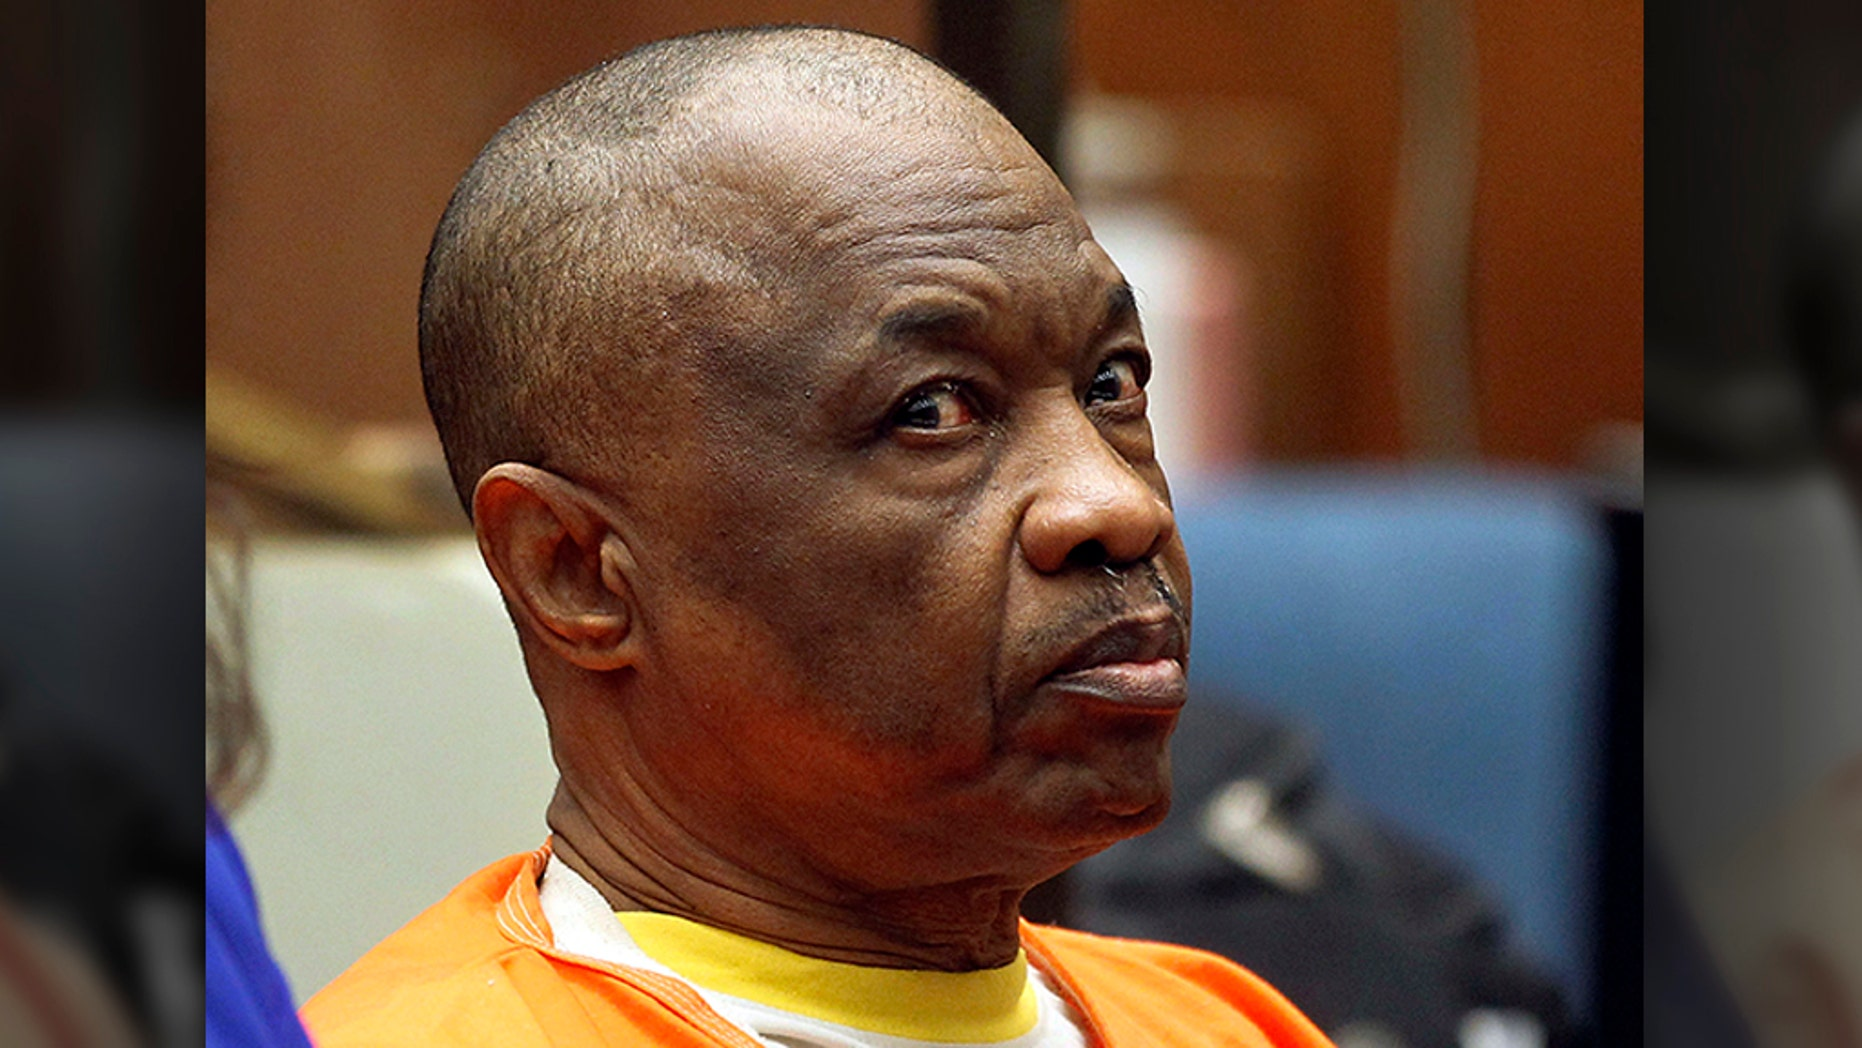 "FILE - In this Feb. 6, 2015, file photo, Lonnie Franklin Jr., who has been dubbed the ""Grim Sleeper"" serial killer, sits during a court hearing in Los Angeles. (AP Photo/Nick Ut, File)"